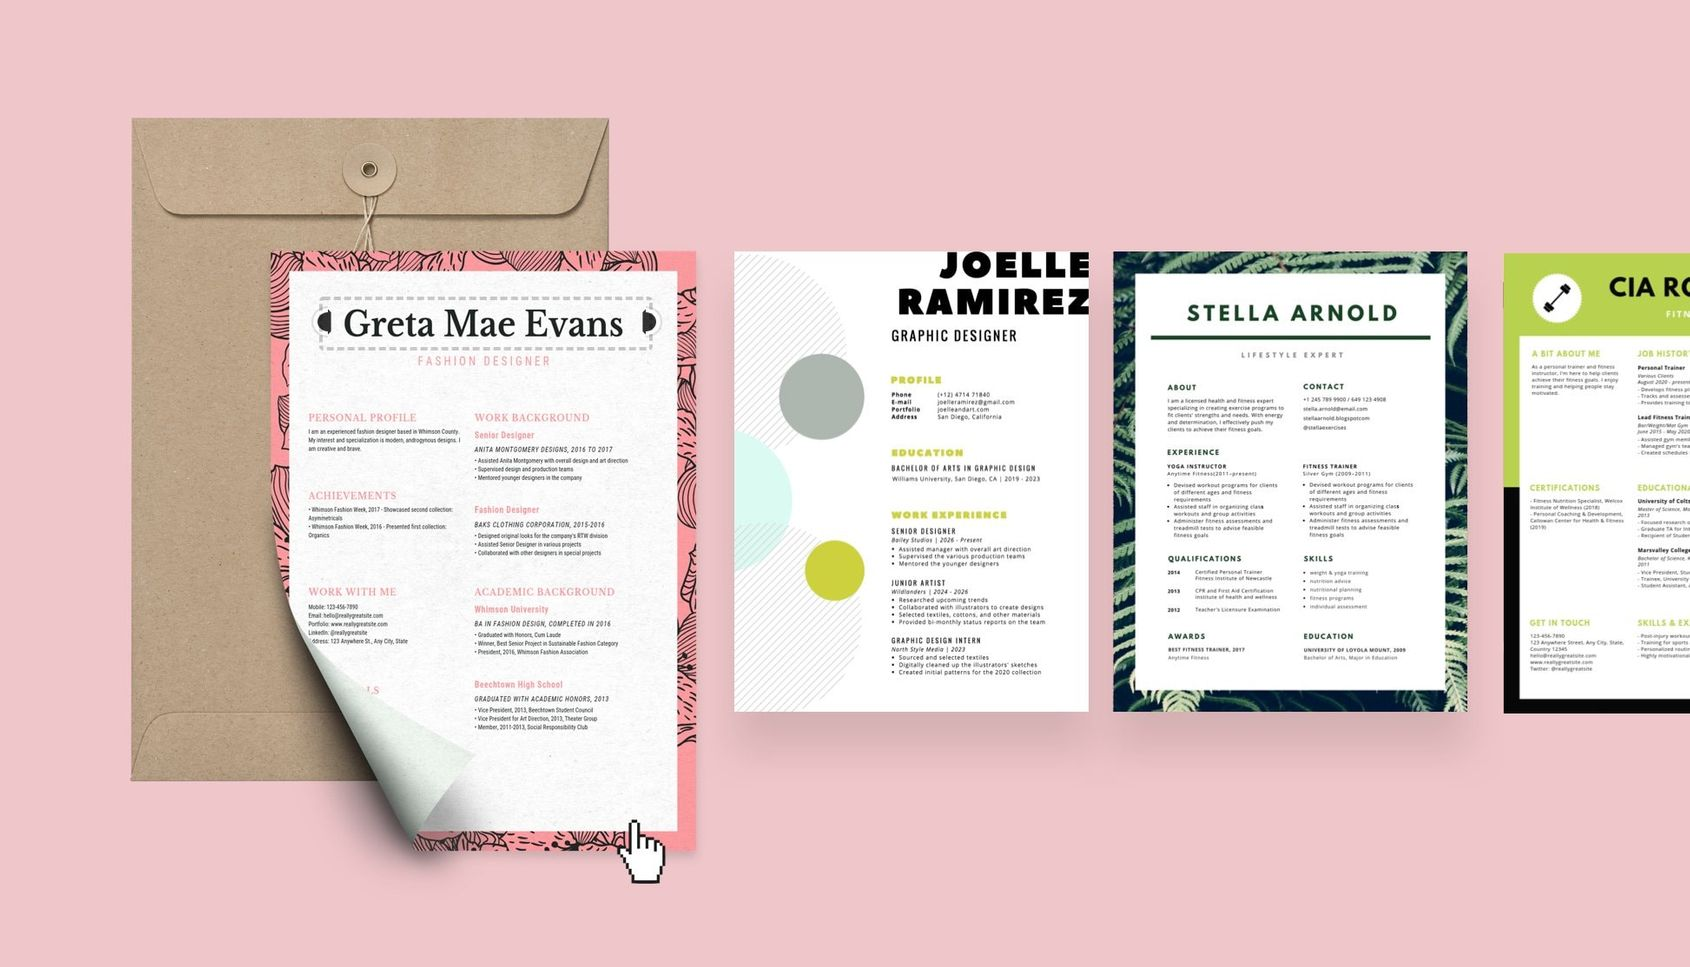 free resume builder design custom in canva make and save for truck driver skills hotel Resume Make And Save Resume For Free